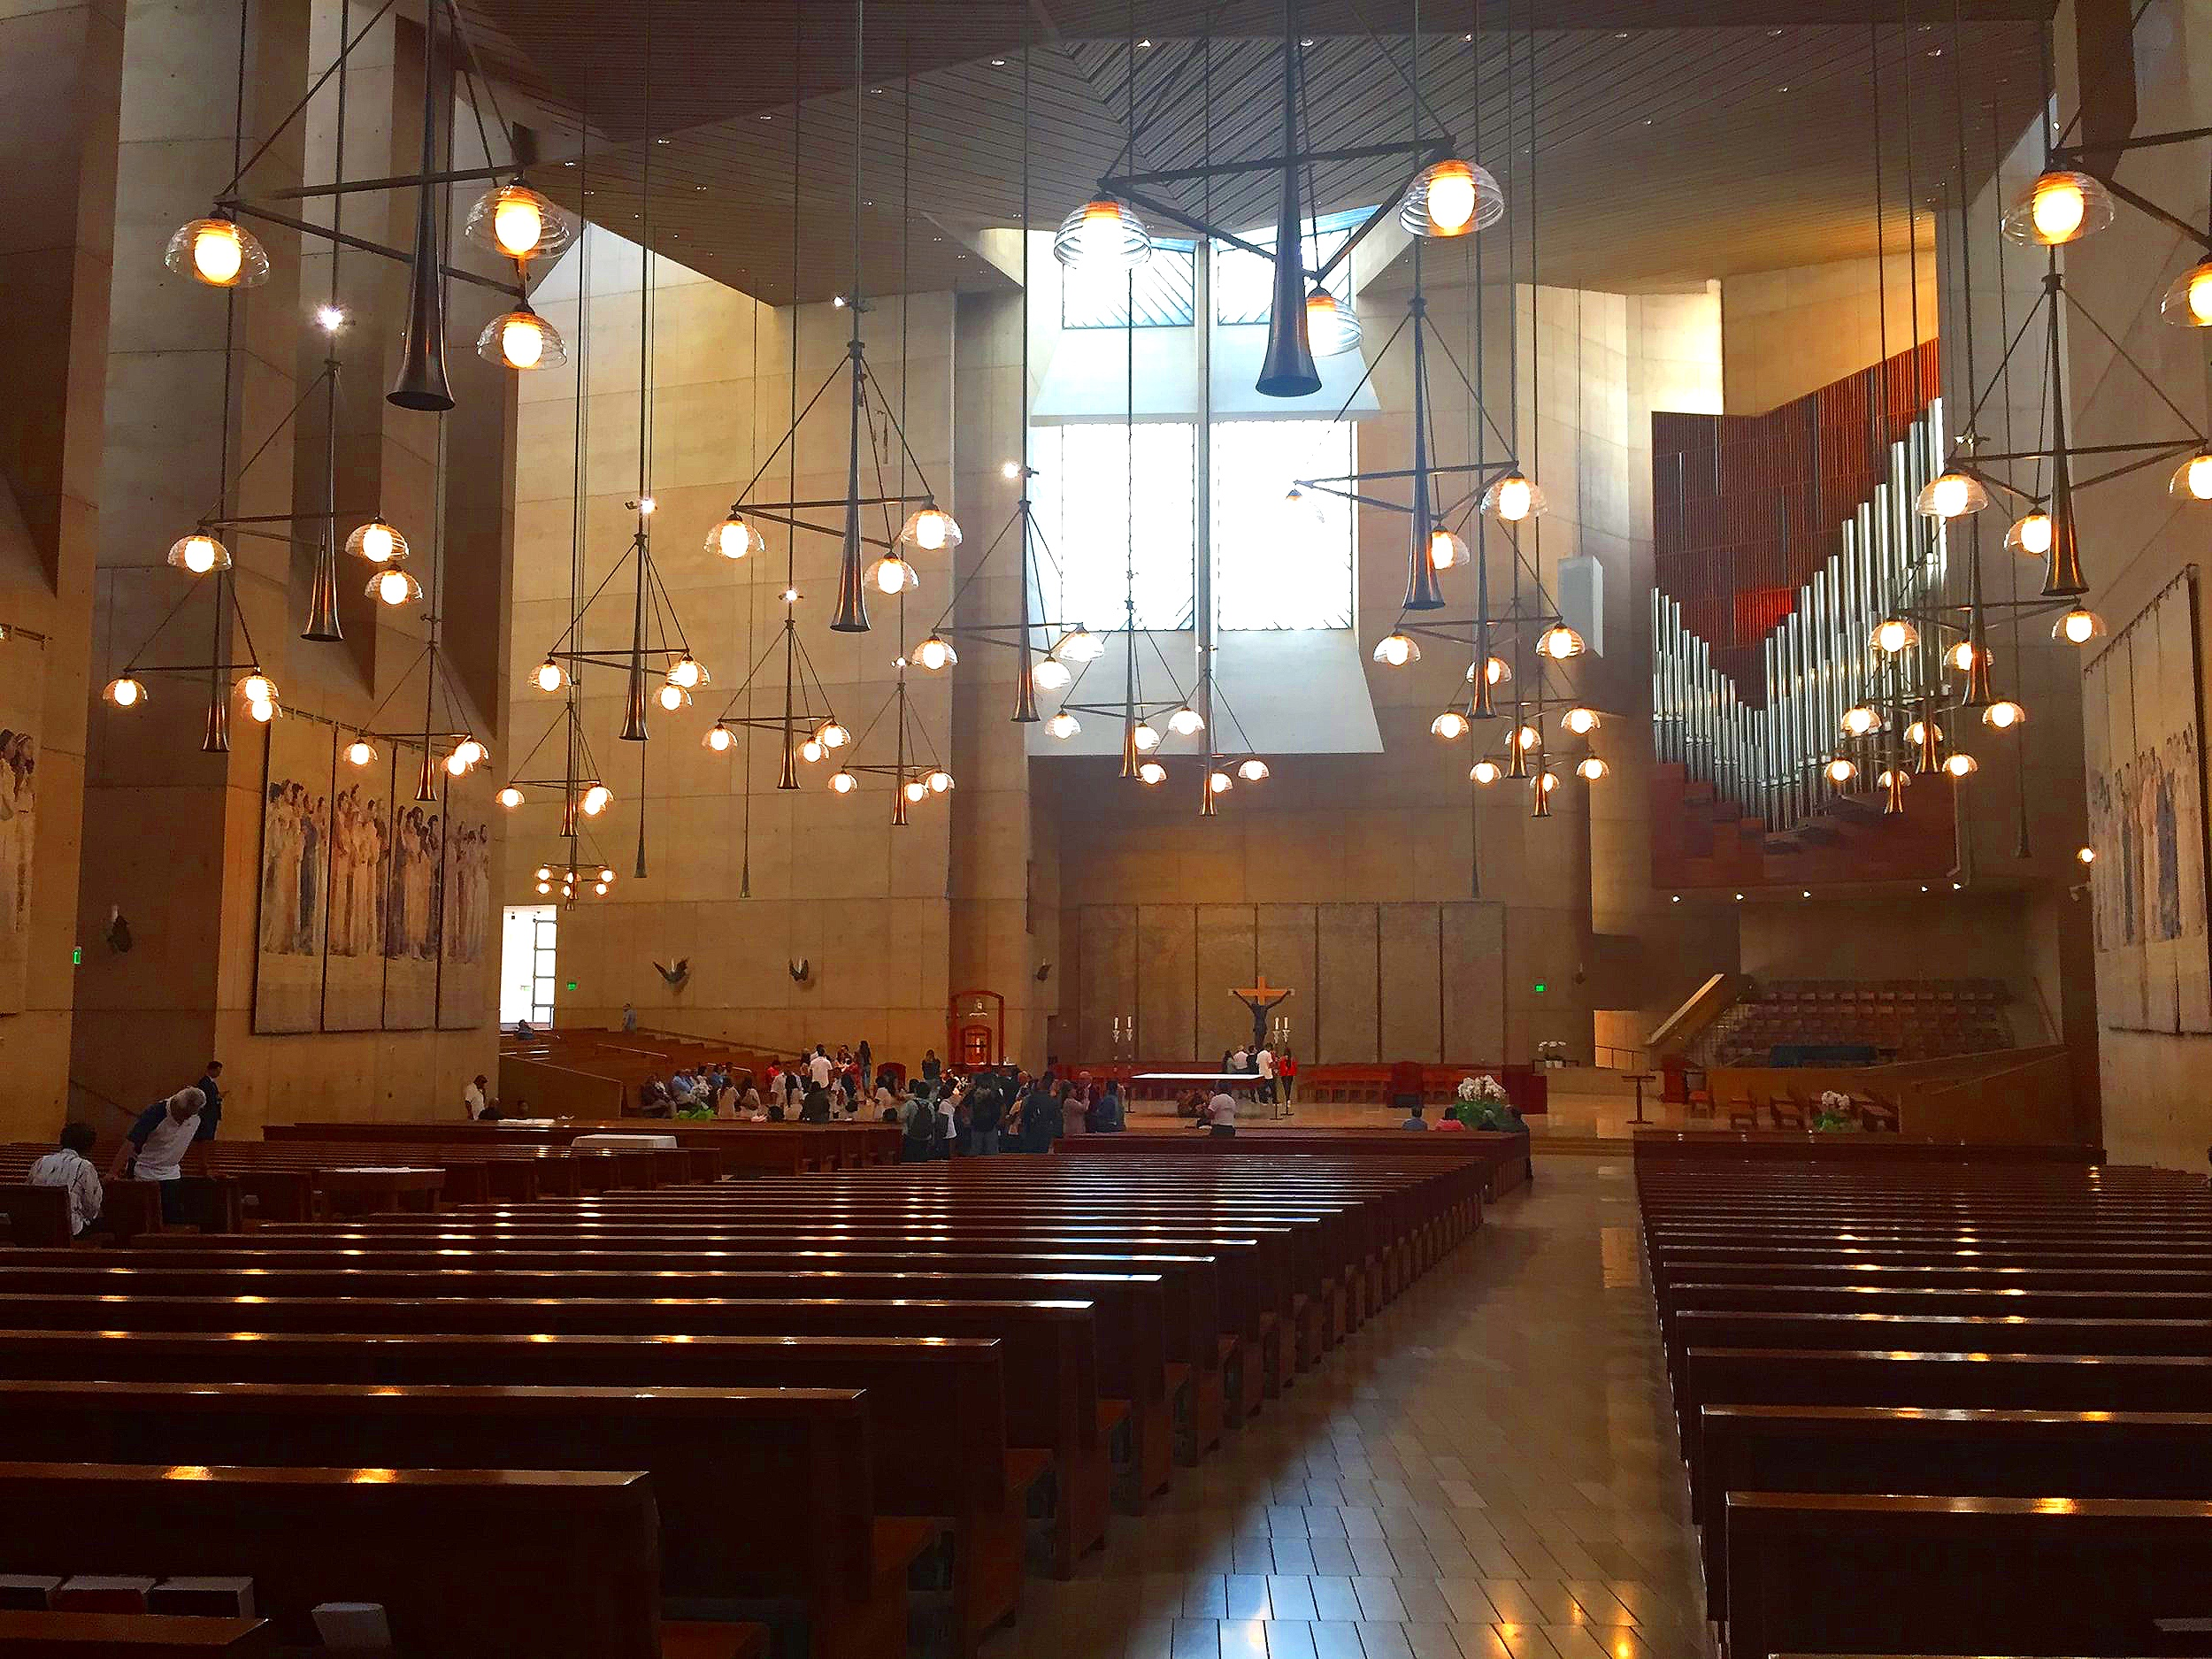 Interior Cathedral of Our Lady of the Angels, Los Angeles